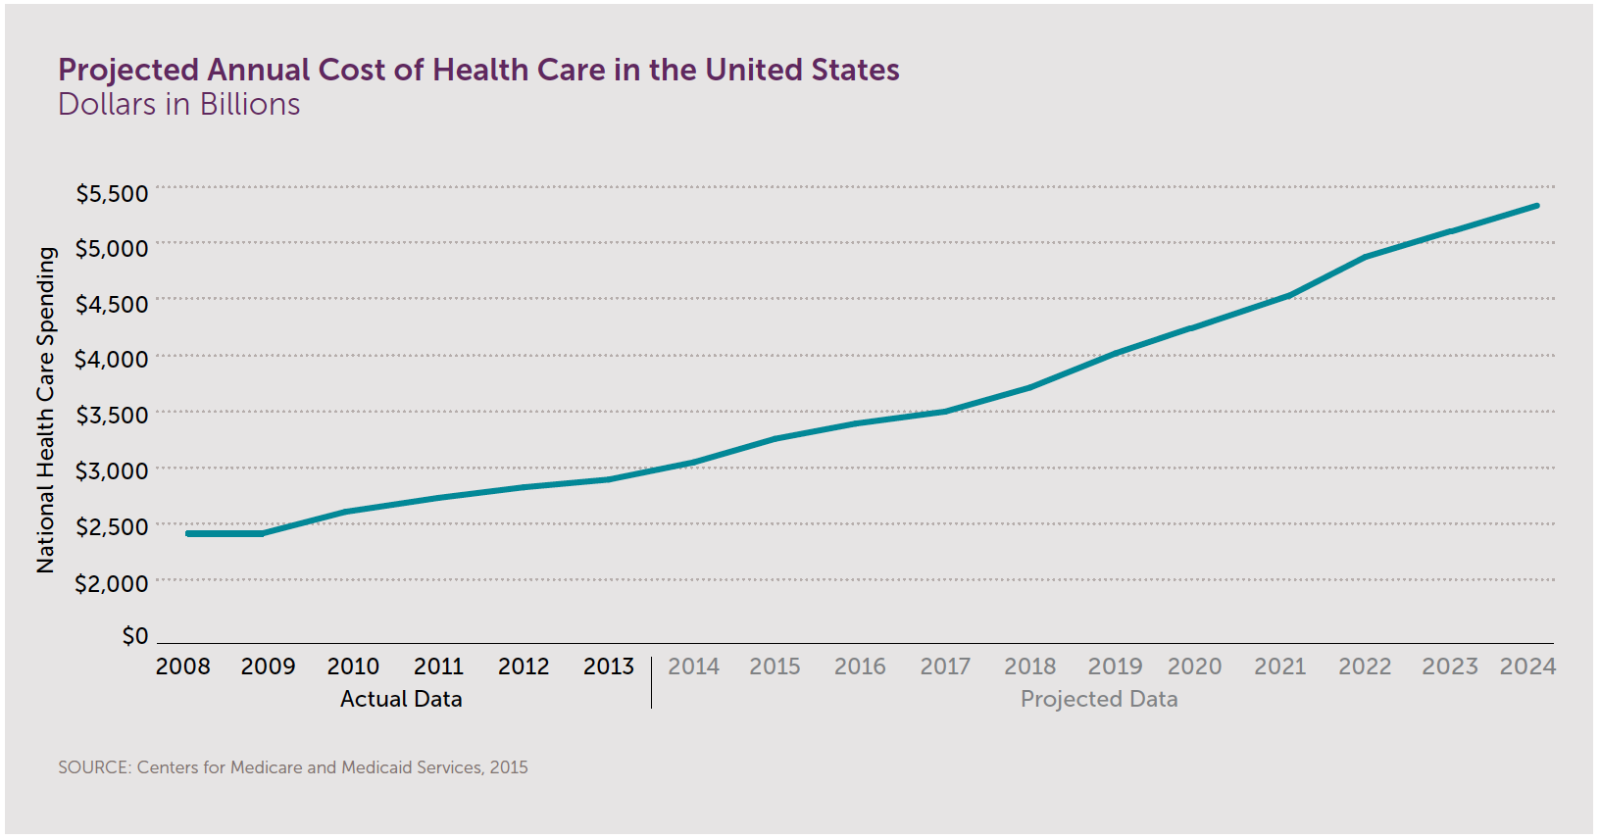 Projected Annual Cost of Health Care in the United States